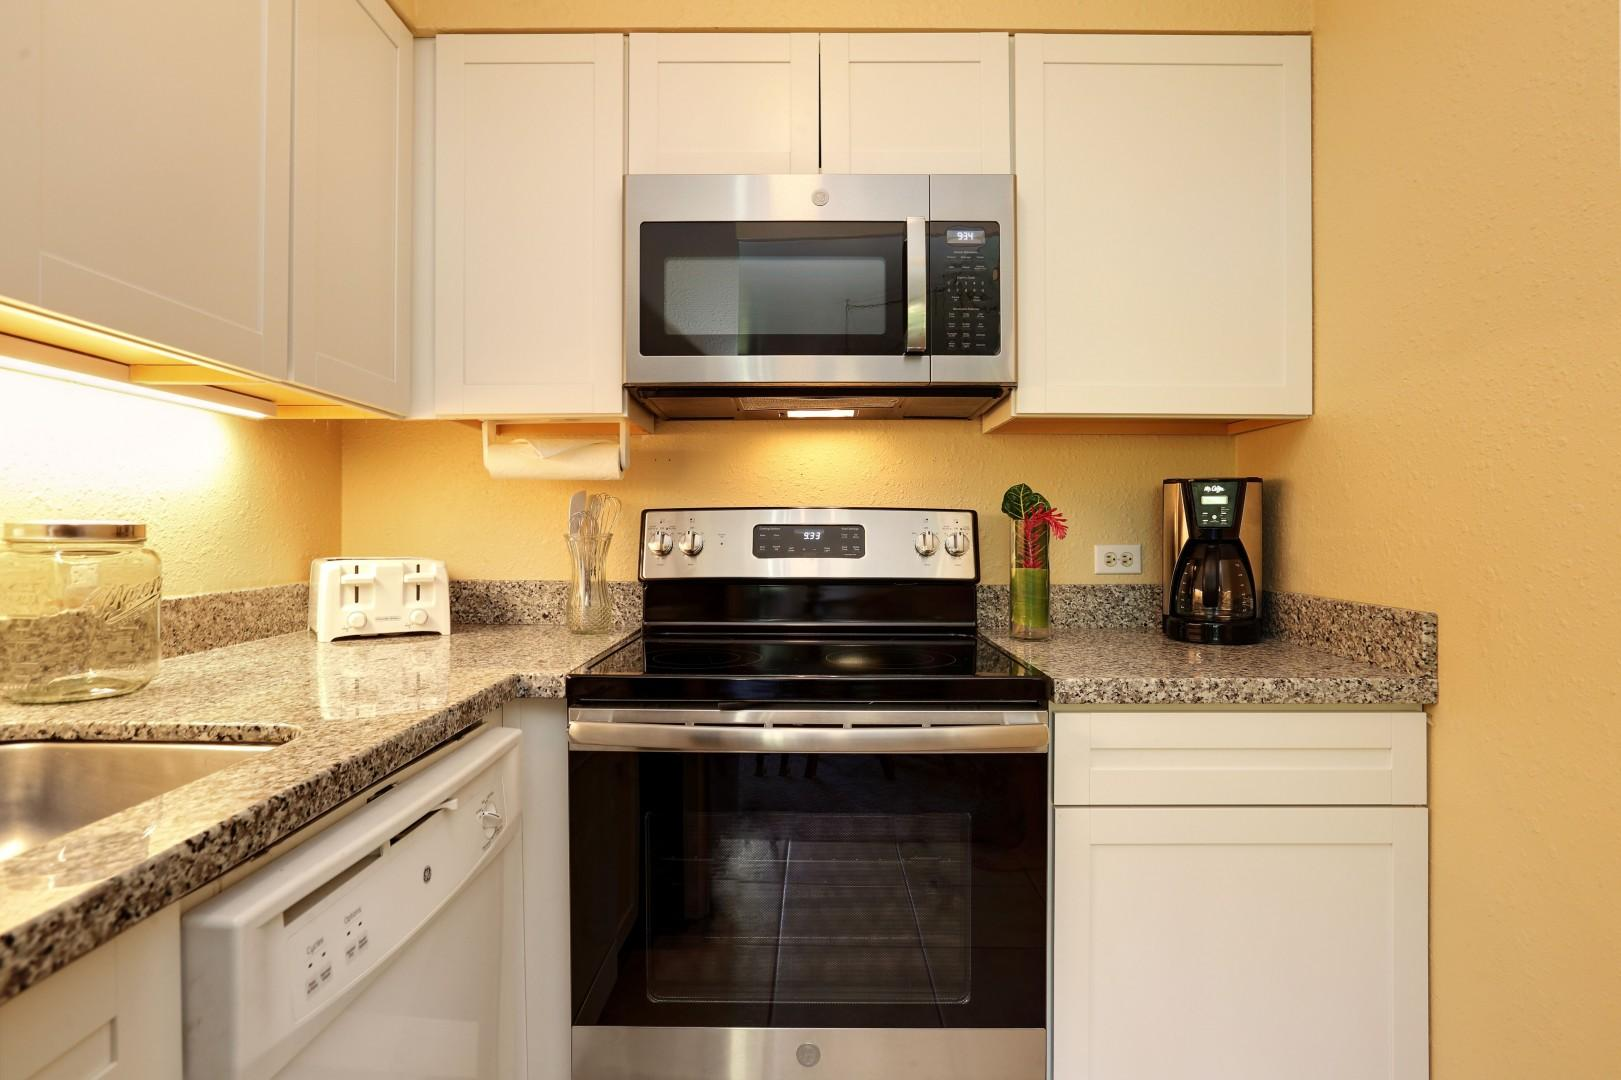 Kitchen with all the amenities needed to cook every meal